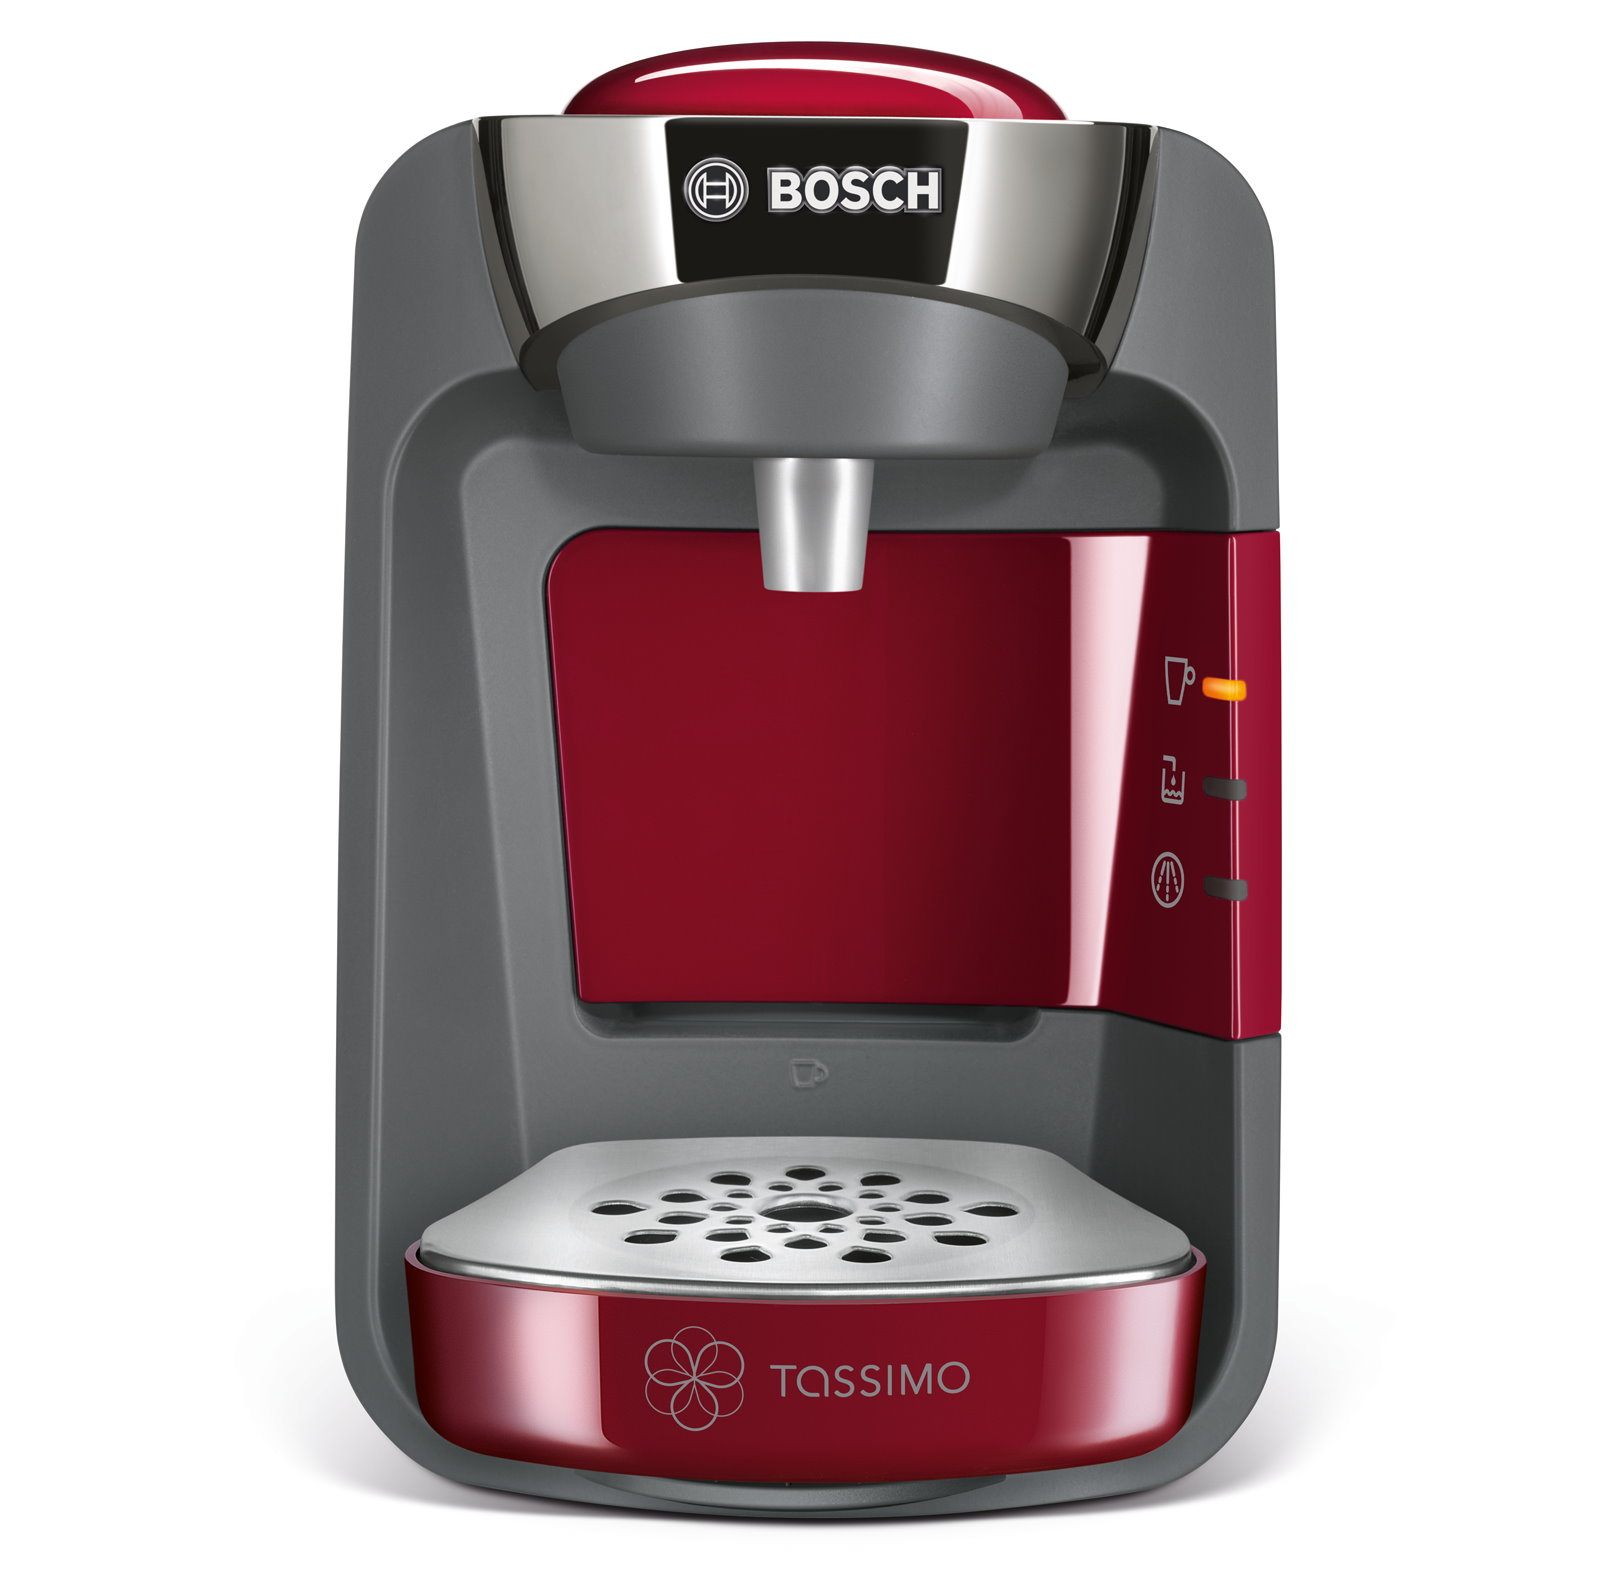 bosch tassimo suny 20 eur gutscheine hei getr nkemaschine kaffeemaschine haushalt kleinger te. Black Bedroom Furniture Sets. Home Design Ideas